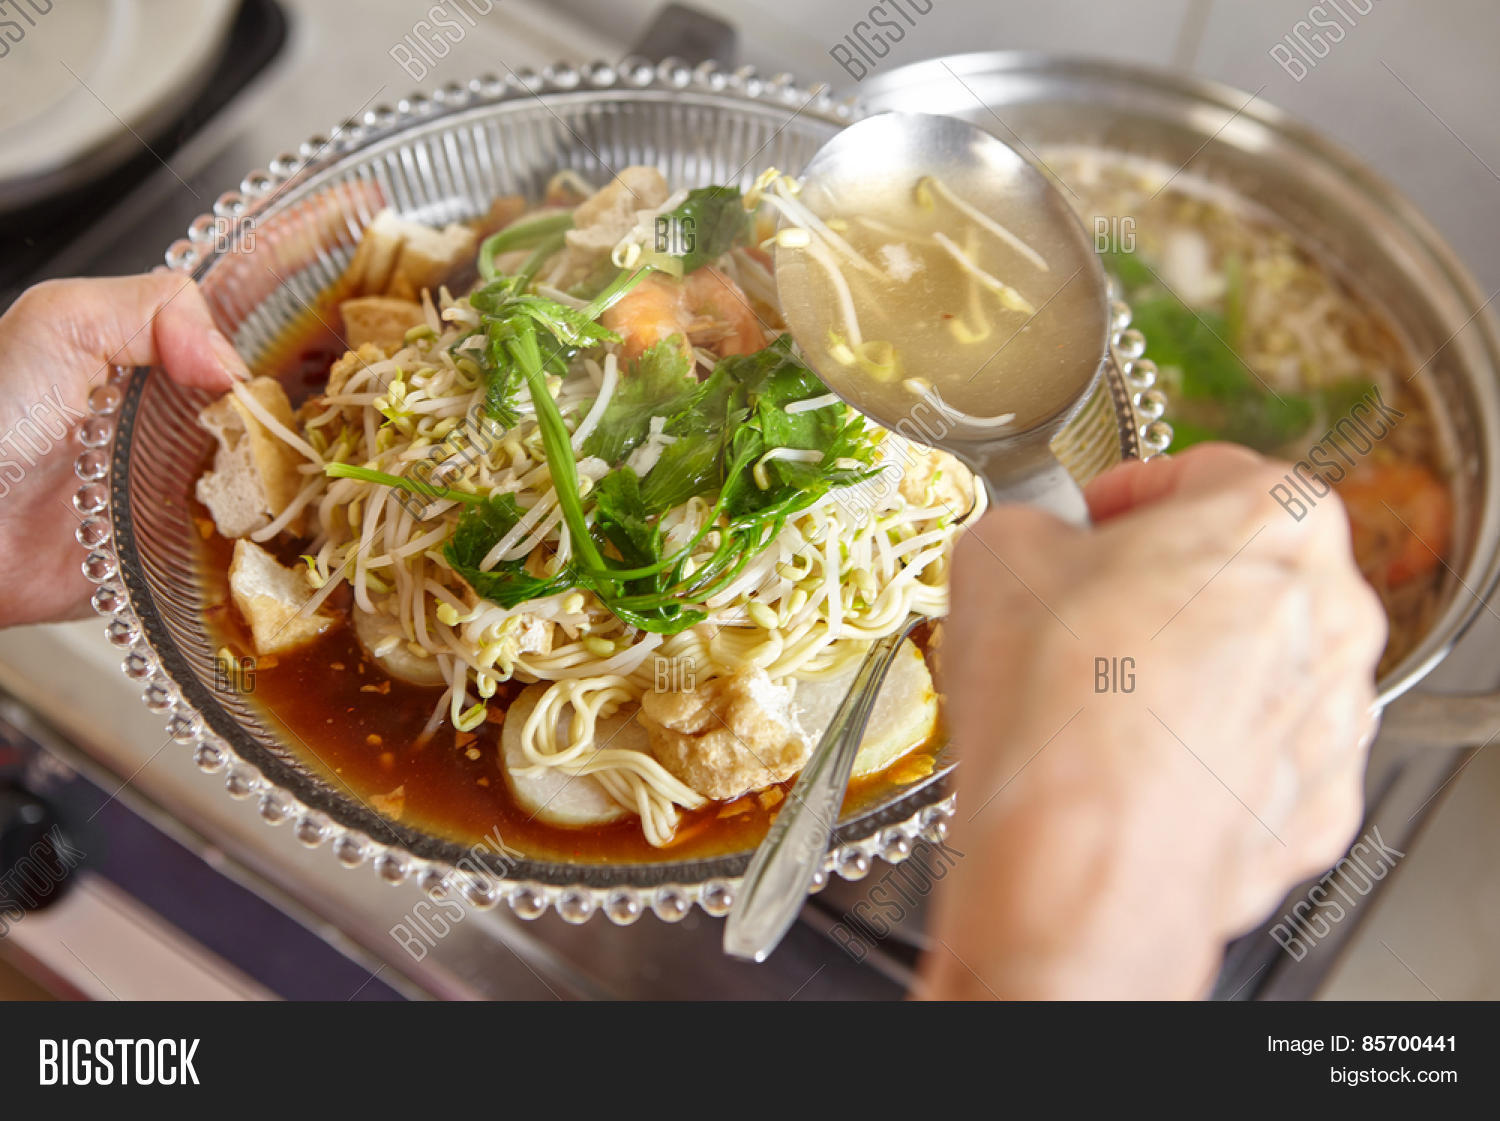 Lontong mie indonesian image photo free trial bigstock lontong mie in indonesian for its famous traditional food or in english maybe spelled rice forumfinder Images